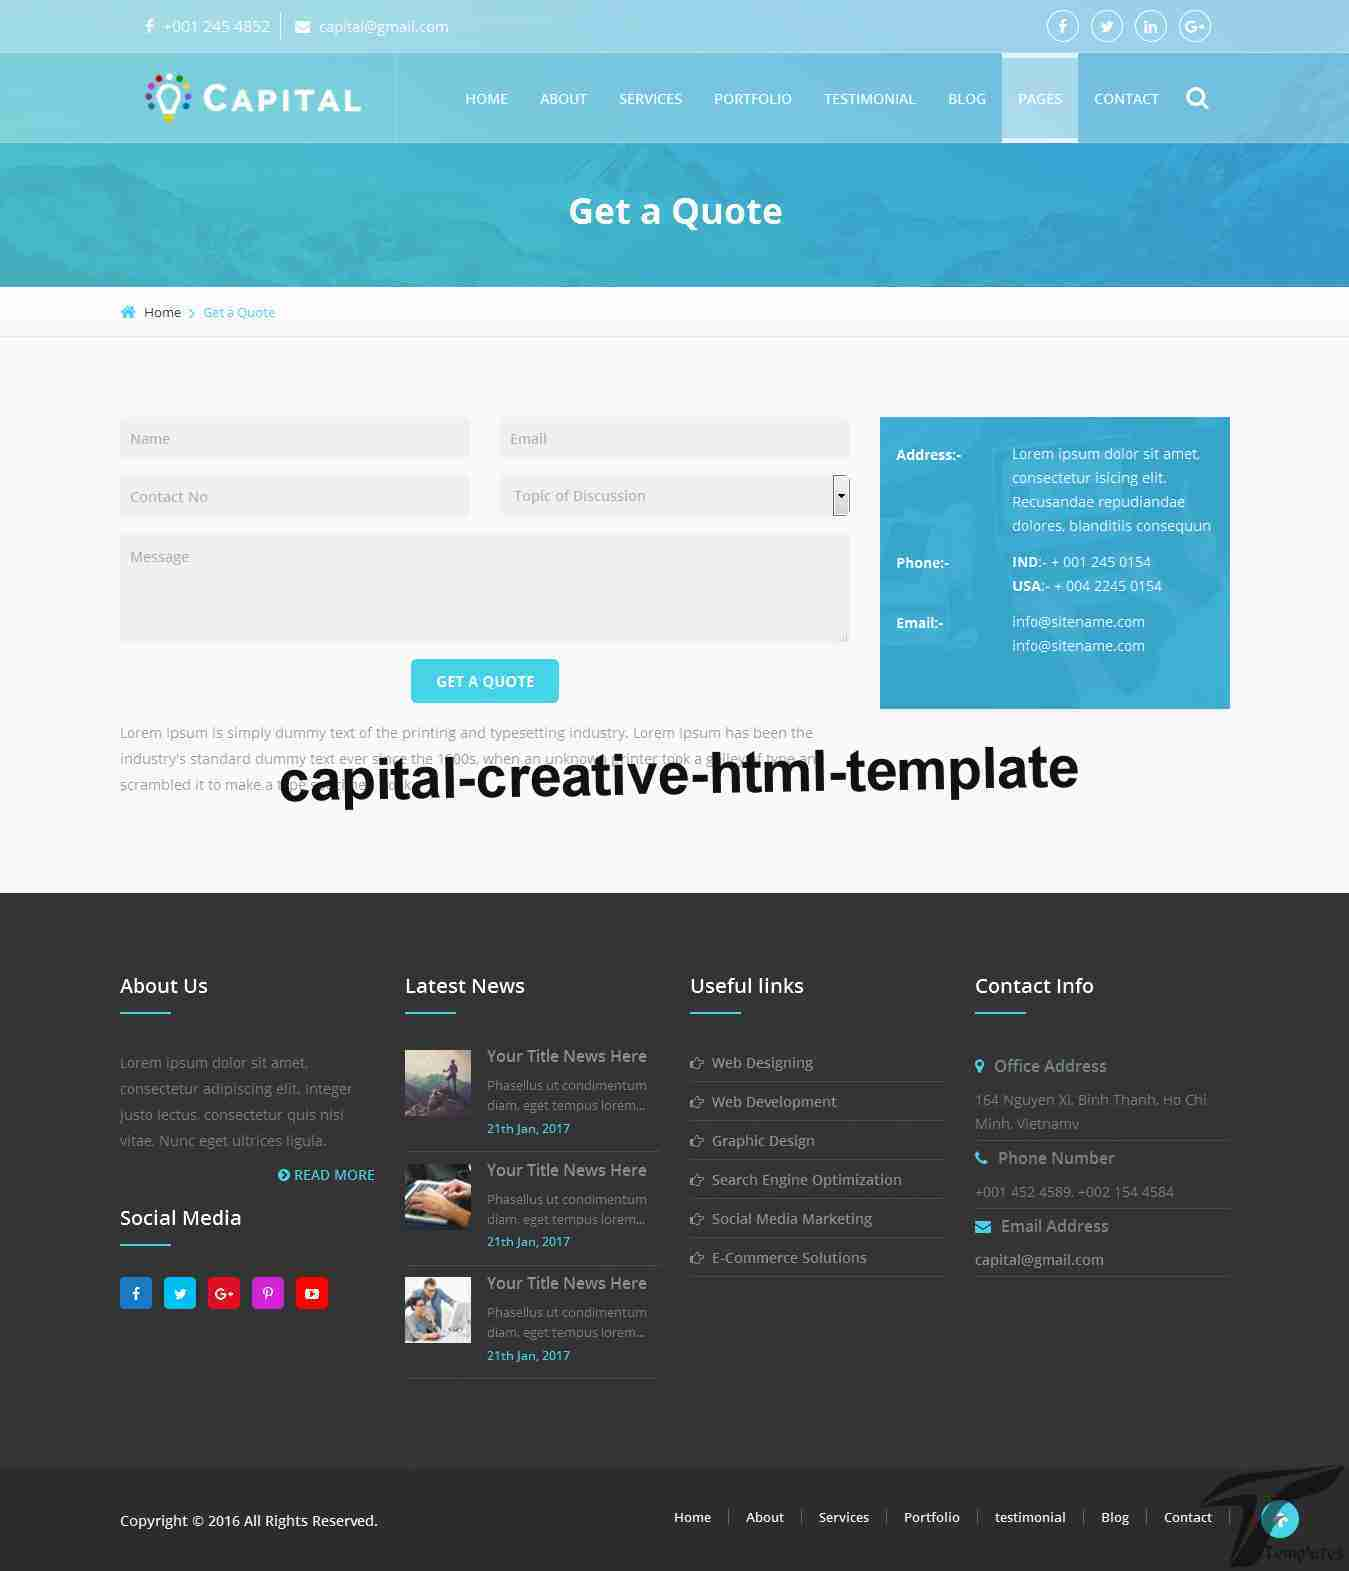 https://images.besthemes.com/images/h1_capital-creative-html-template12-_-205260579/Theme-s20s-Preview/07_Quote.png